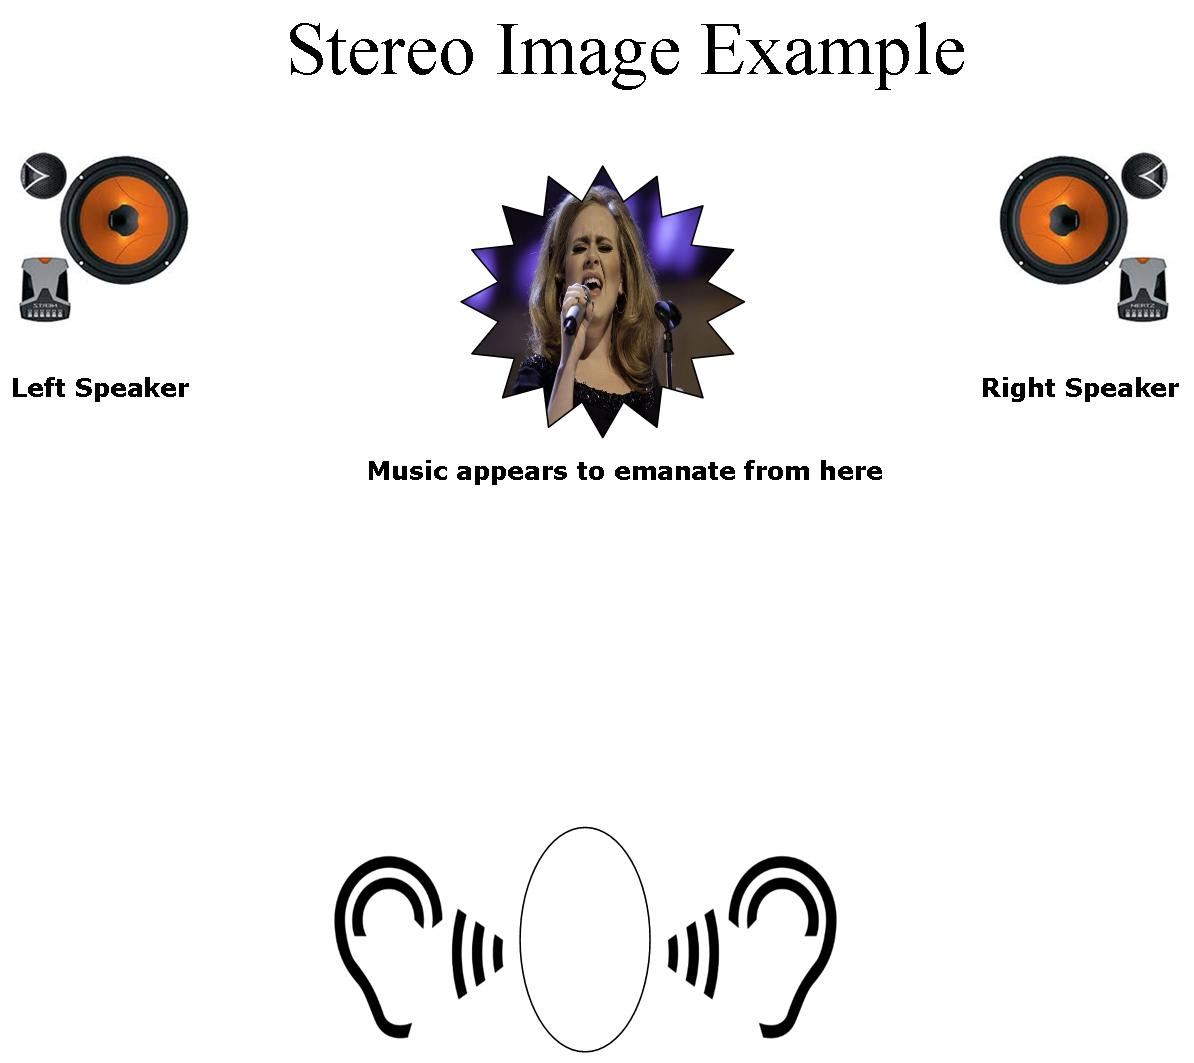 Stereo Image Example